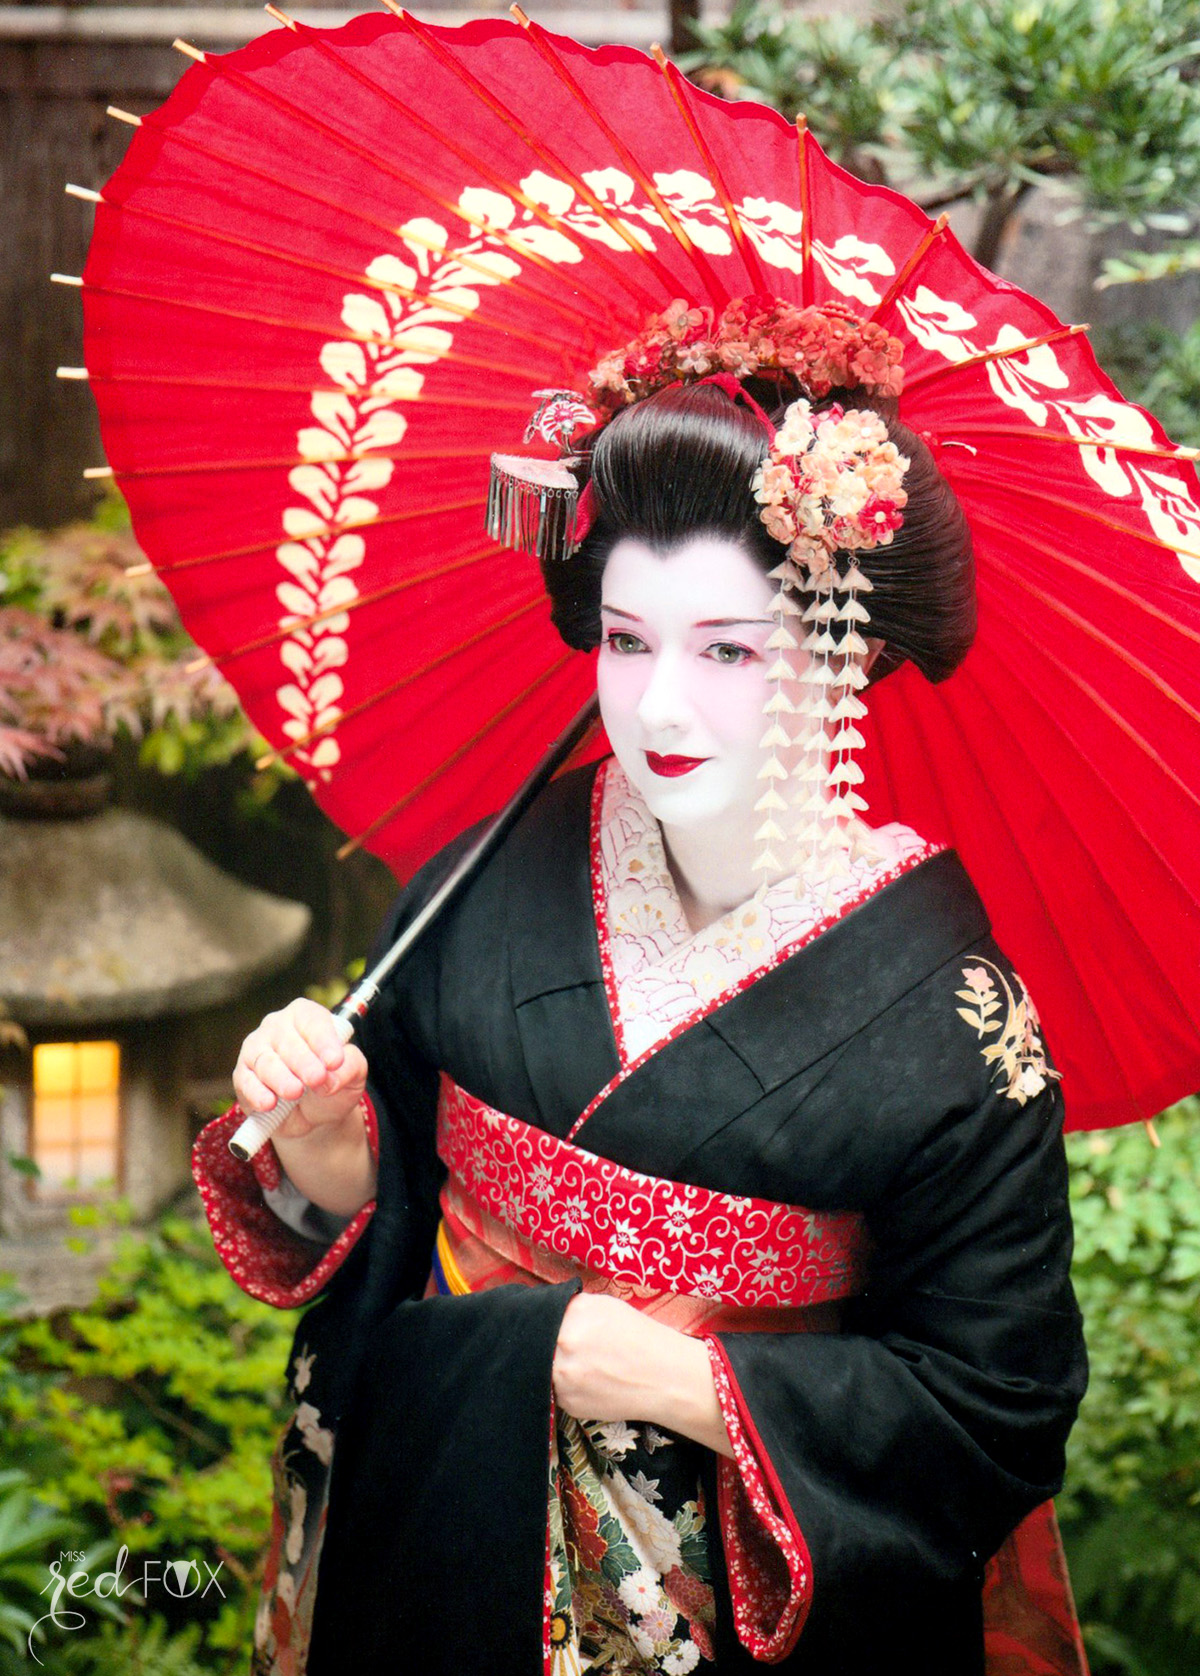 missredfox - Japan - Kyoto - 11